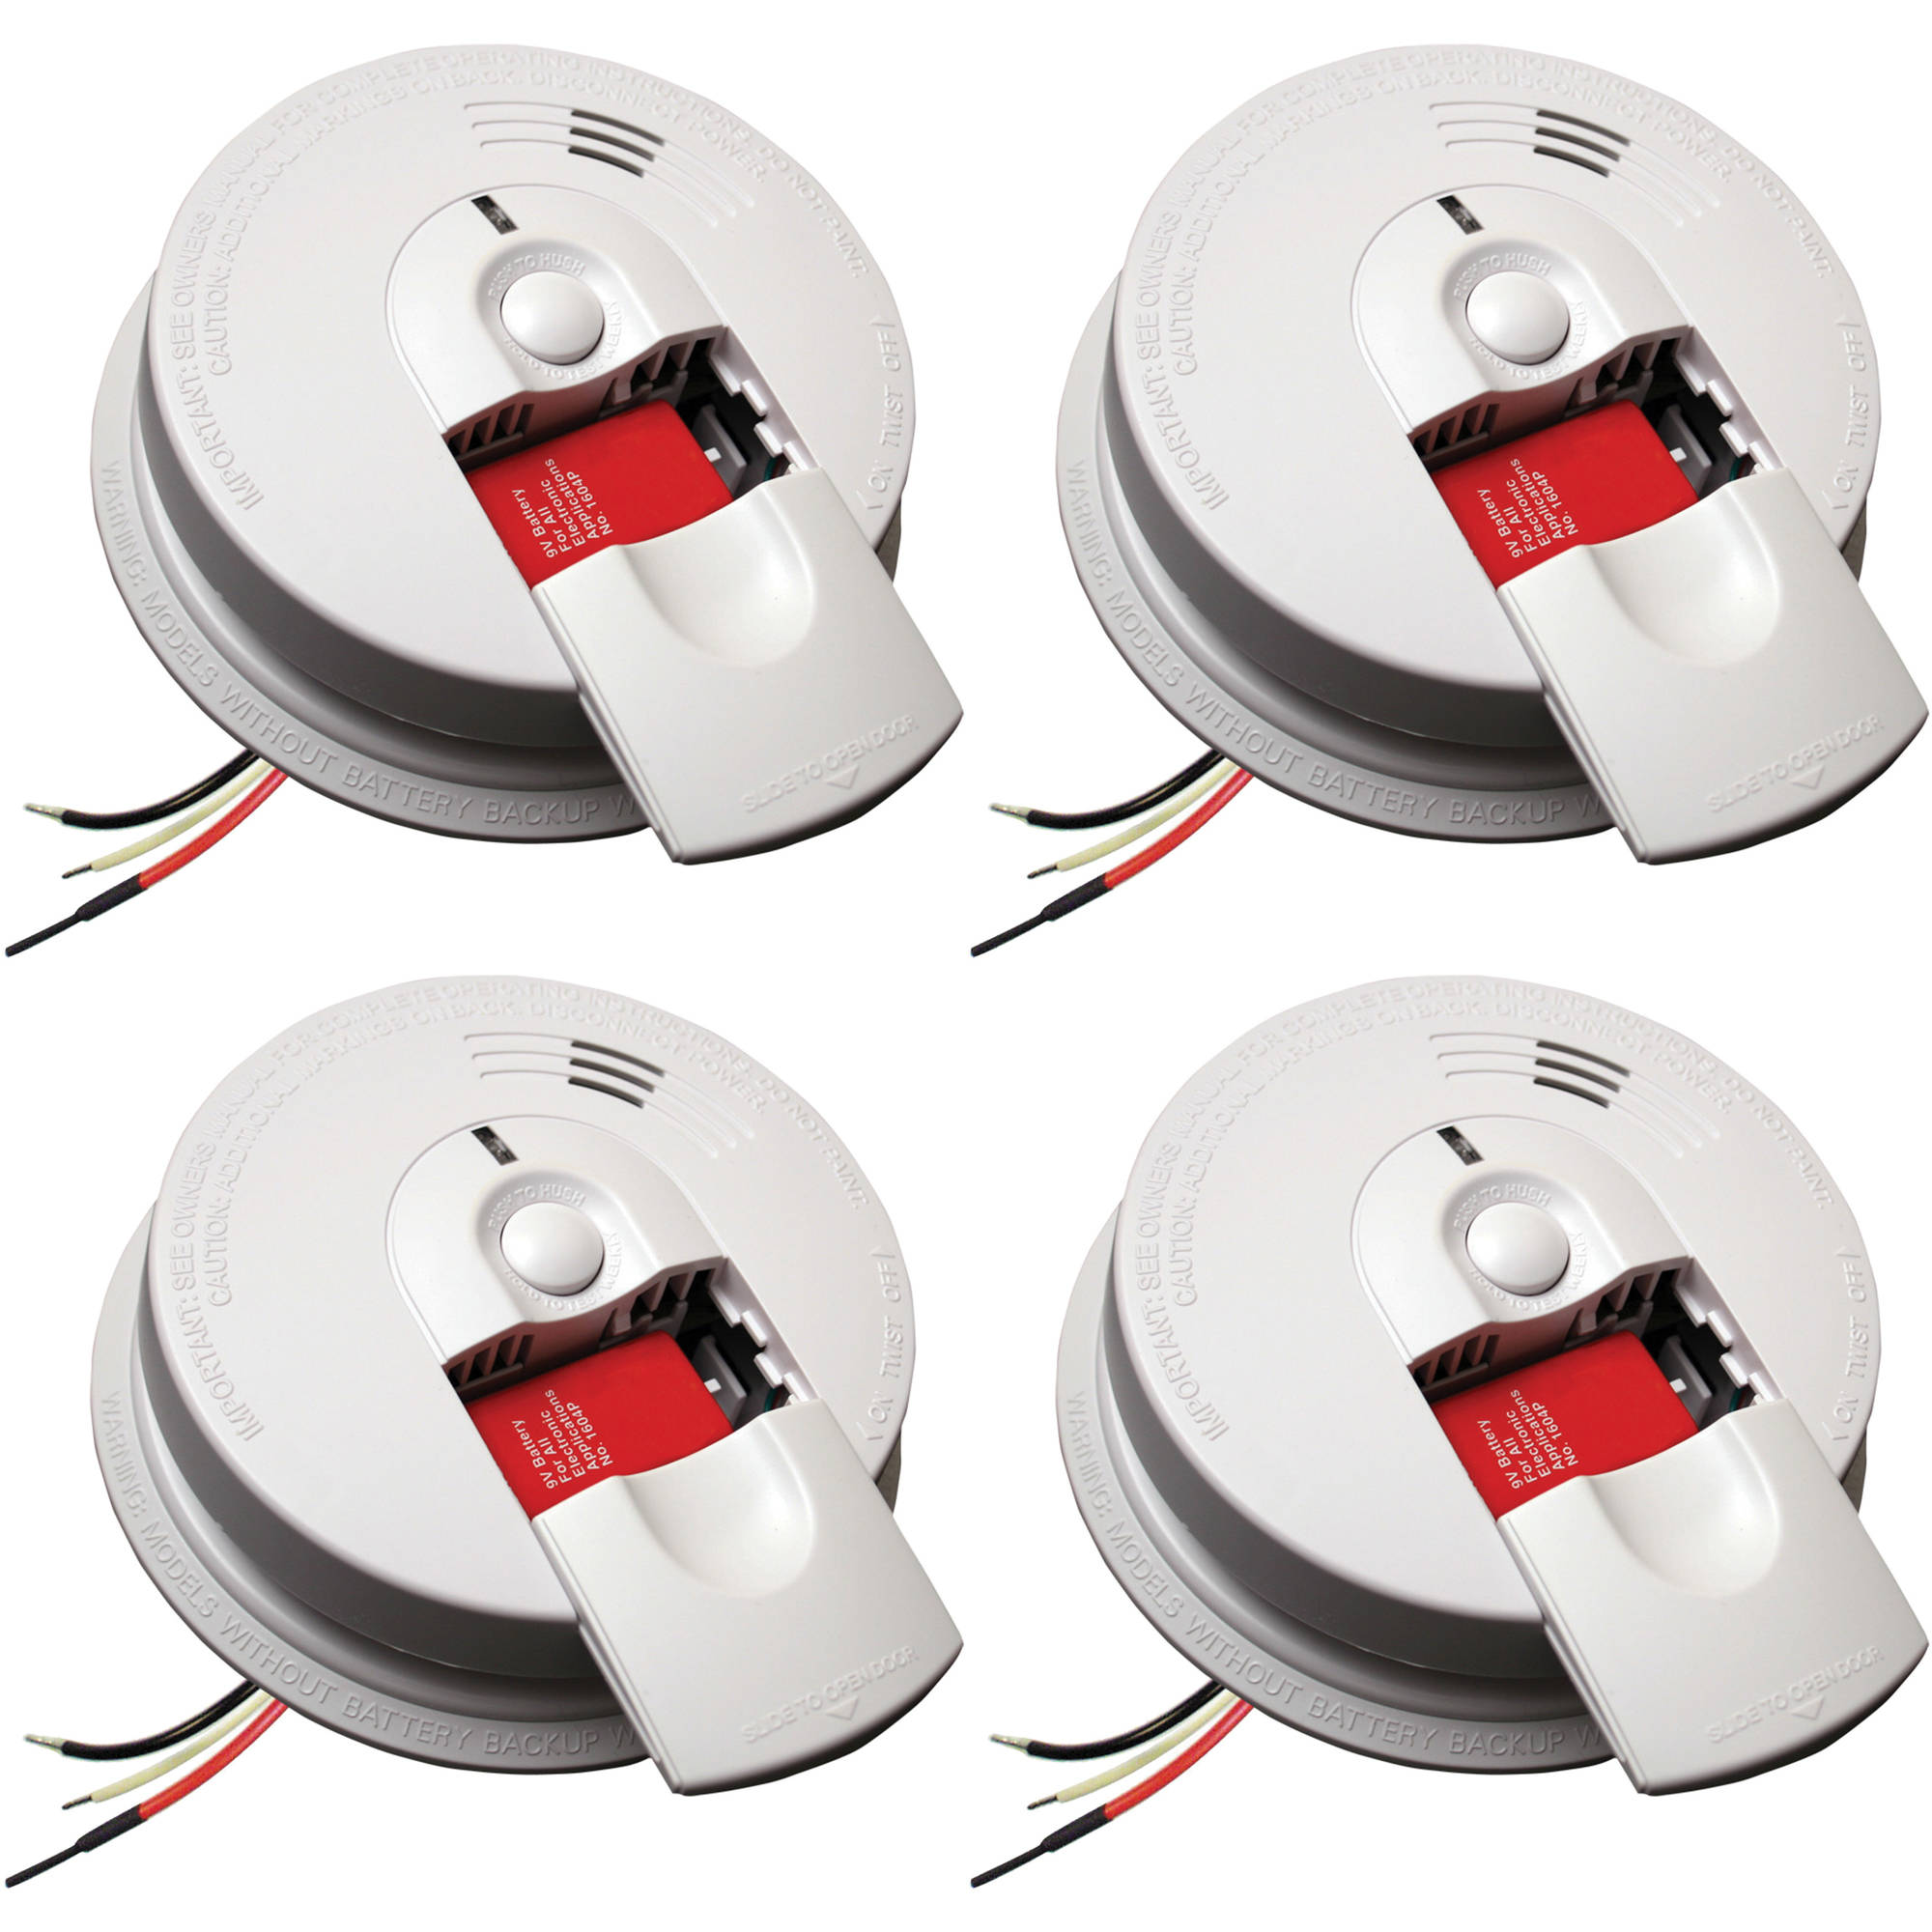 I4618 Contractor Pack, 4-Piece